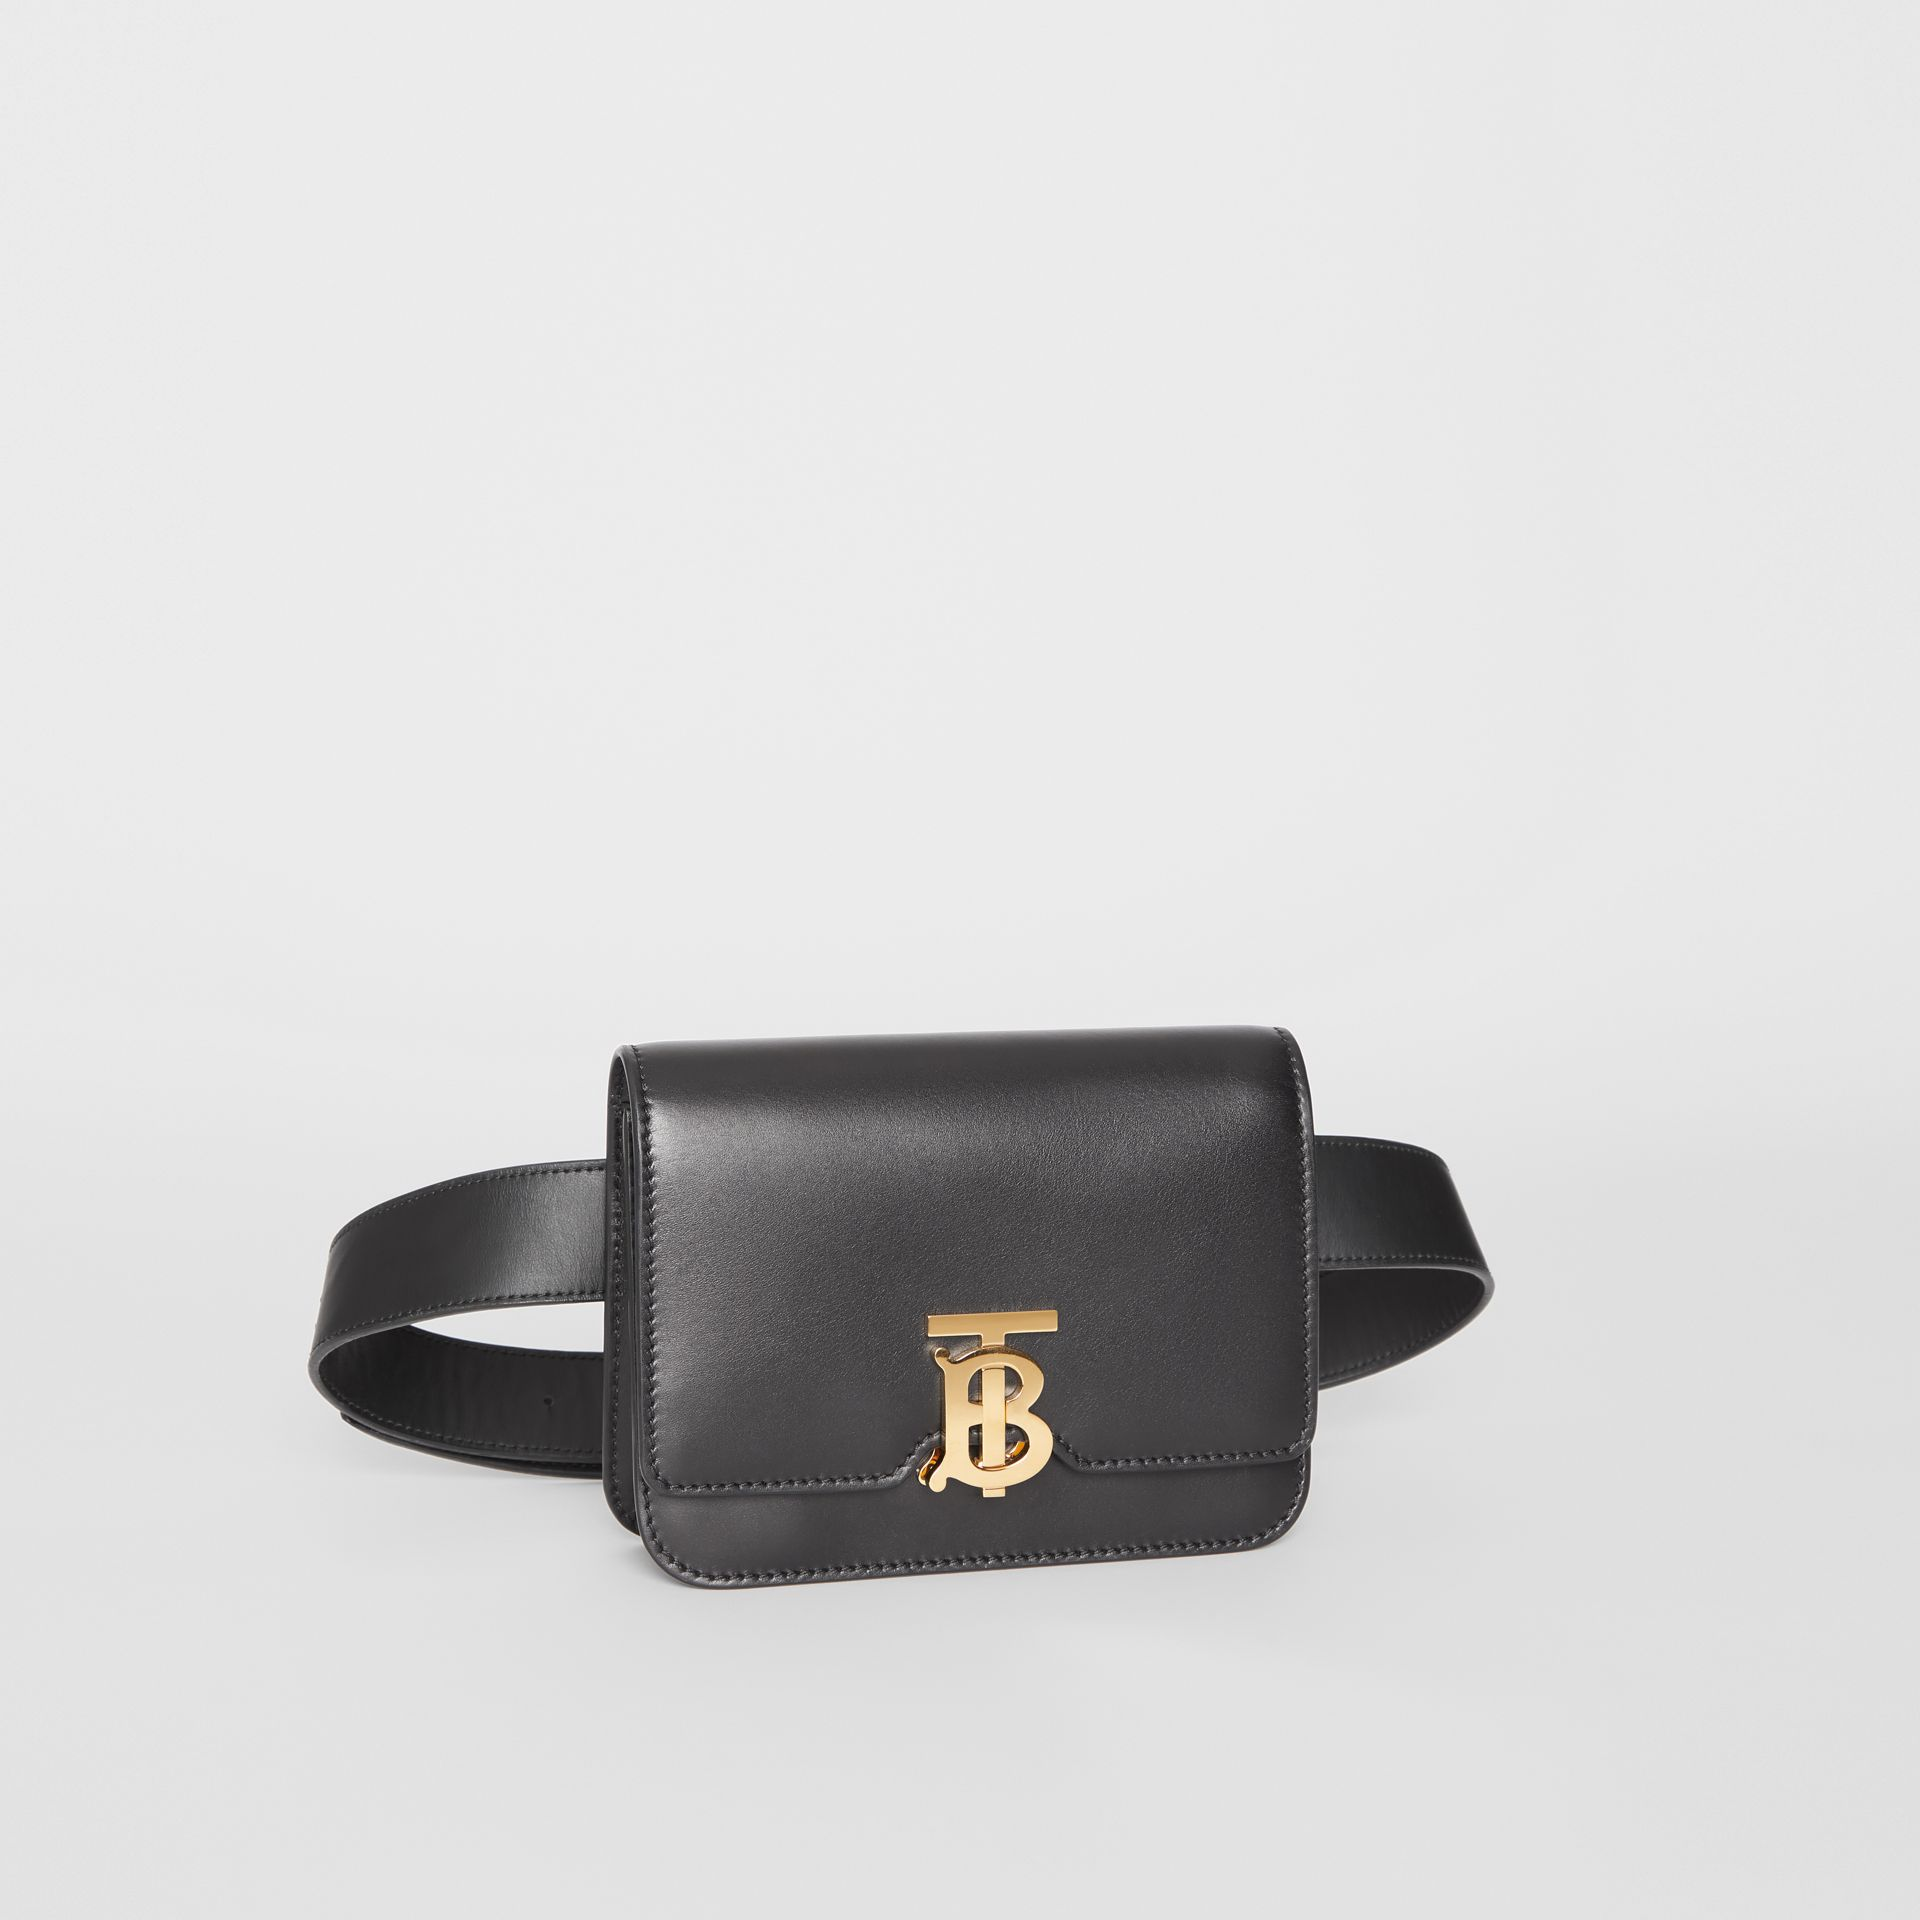 Belted Leather TB Bag in Black - Women | Burberry - gallery image 5